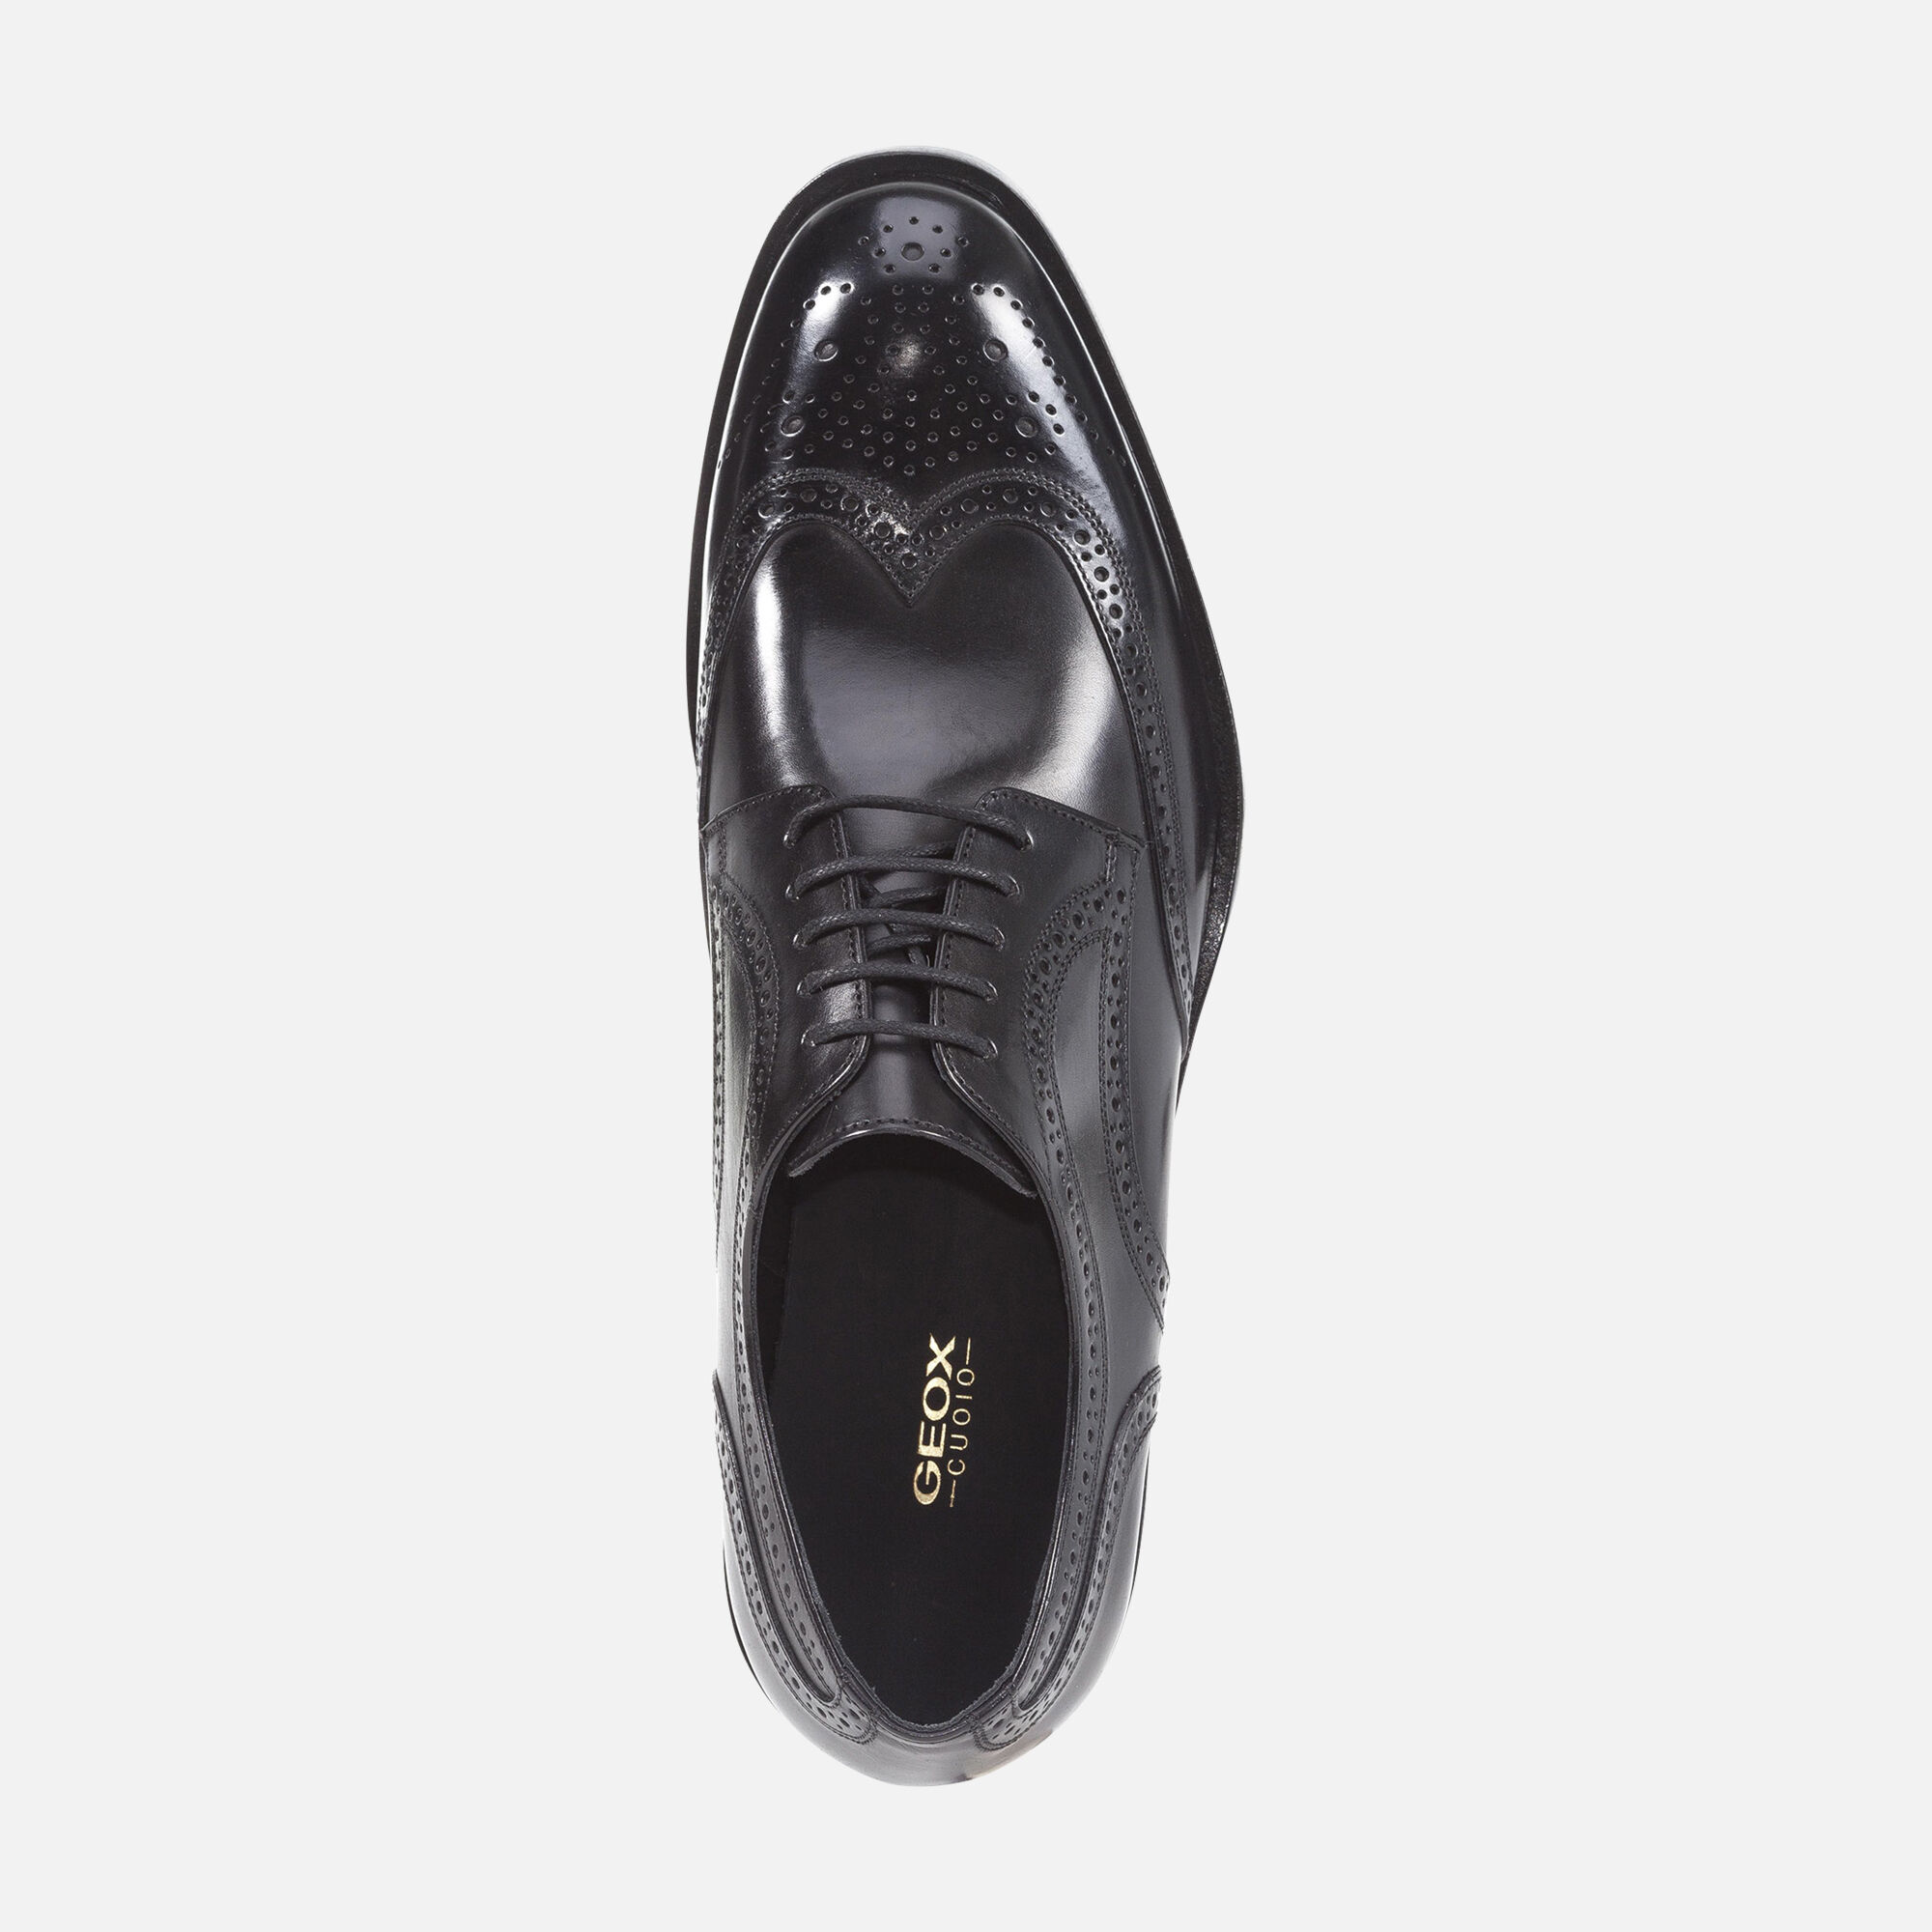 Geox Men's Nebula Leather Sneakers | Shop Your Way: Online